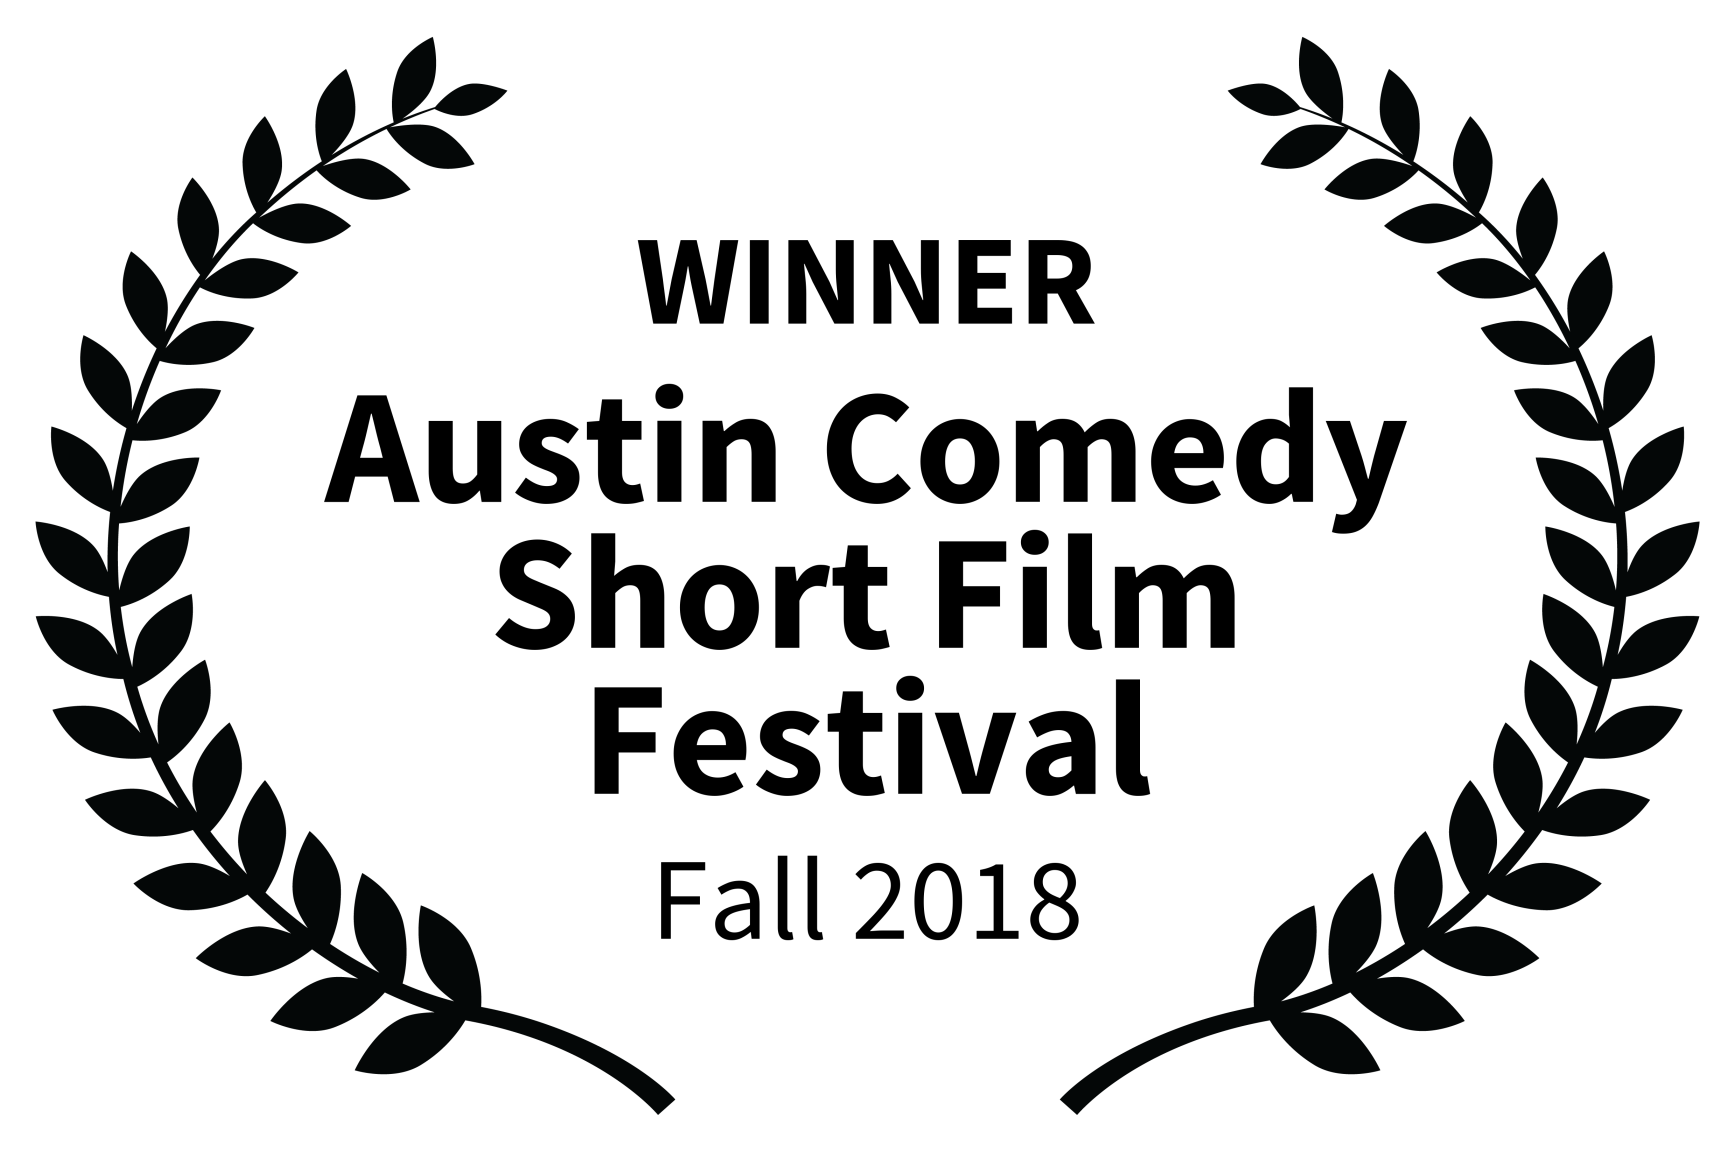 WINNER - Austin Comedy Short Film Festival - Fall 2018 Black - Copy.png